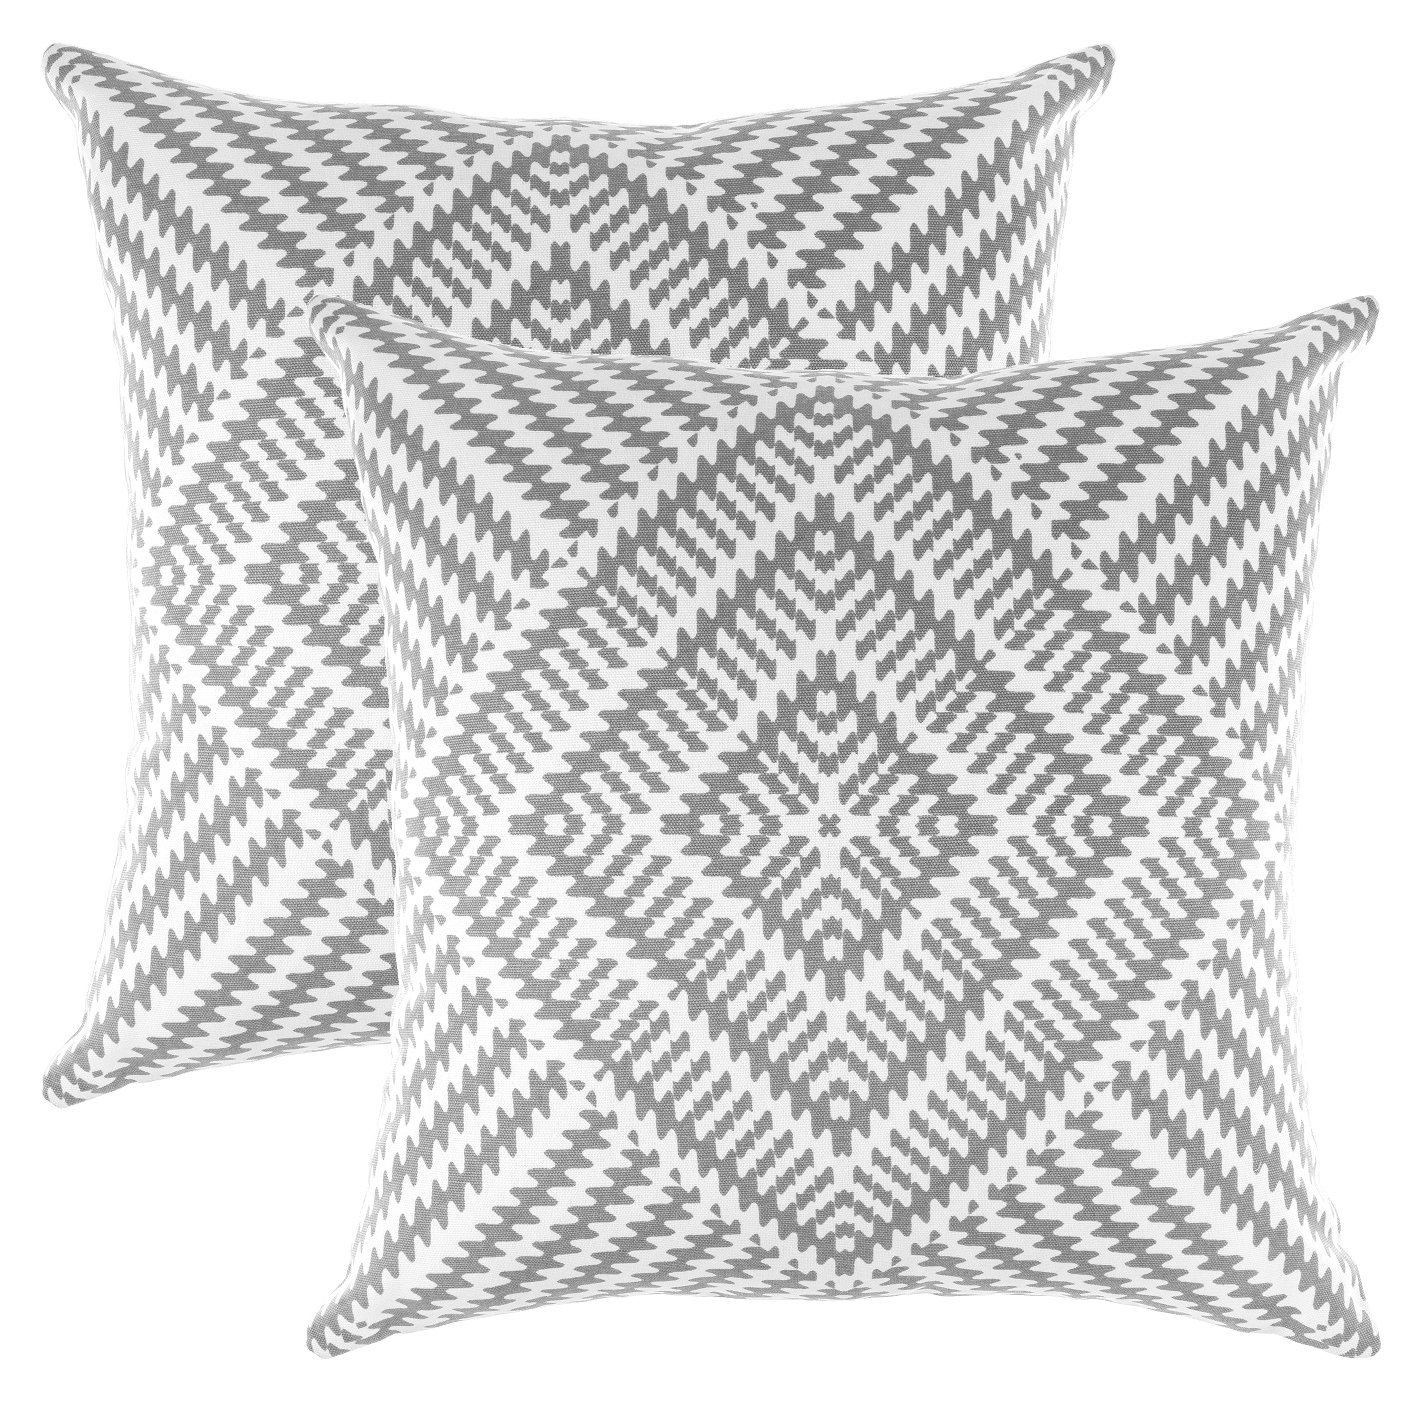 TreeWool, Pack of 2, Throw Pillow Cover Kaleidoscope Accent 100% Cotton Decorative Square Cushion Cases (16 x 16 Inches / 40 x 40 cm; Sleet Grey & Off White)